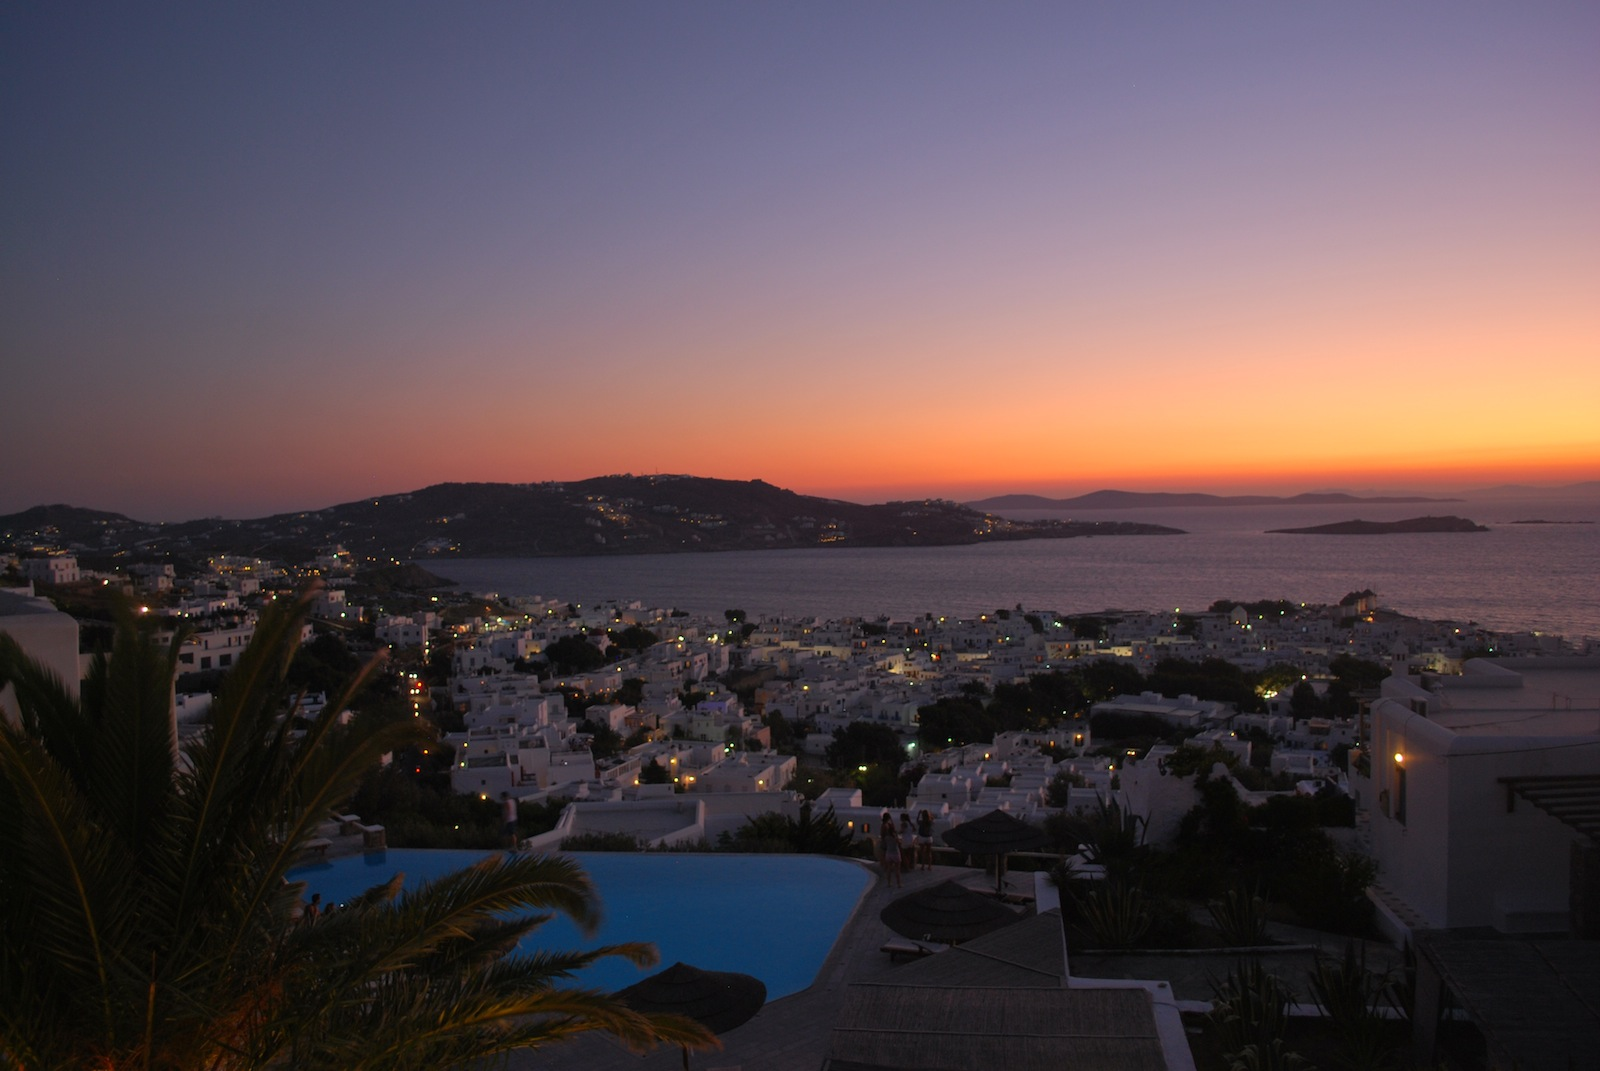 Just after the sunset  in Mykonos